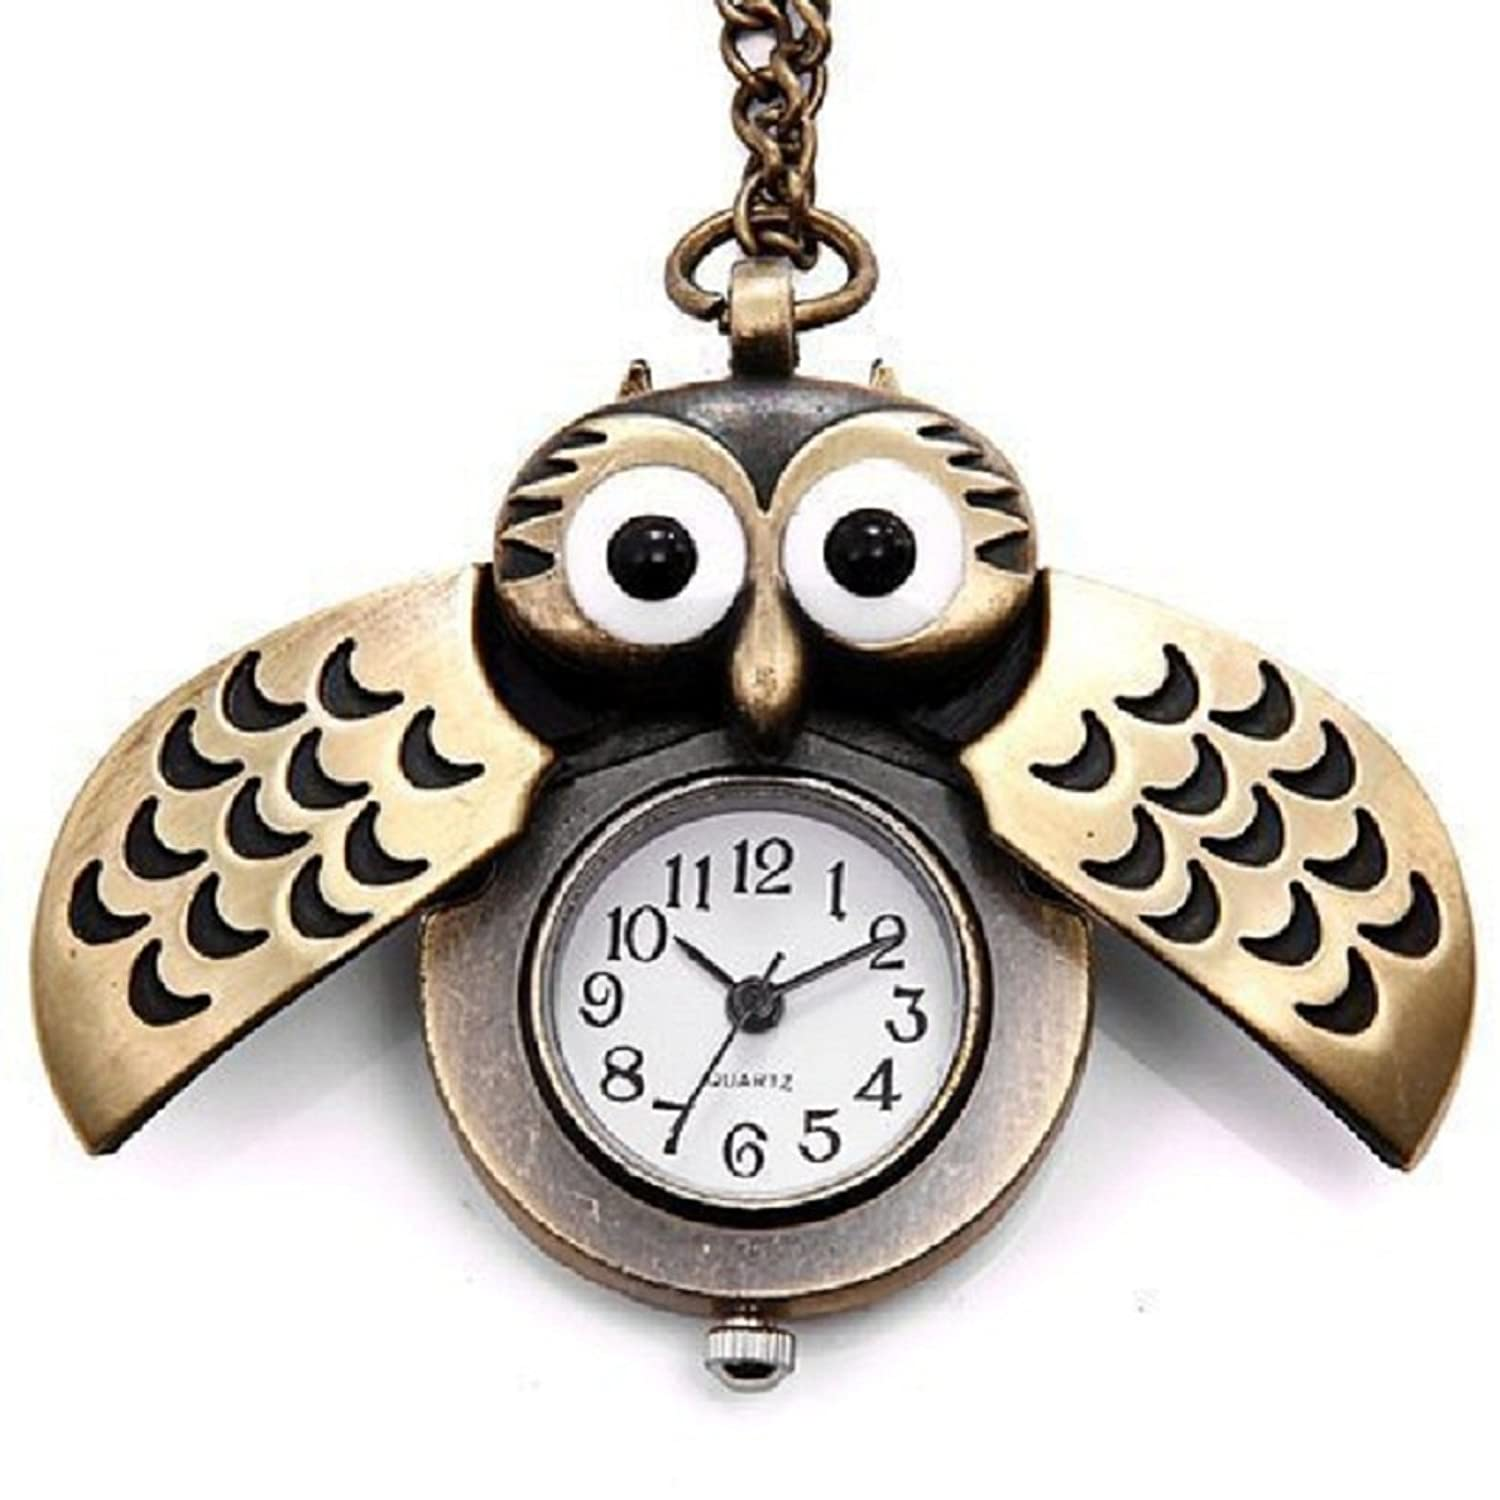 vintage item new clock watches bronze design men cool retro necklace spiderman antique quartz for long fob in eyes white flip pendant from women watch gift classic chain with pocket